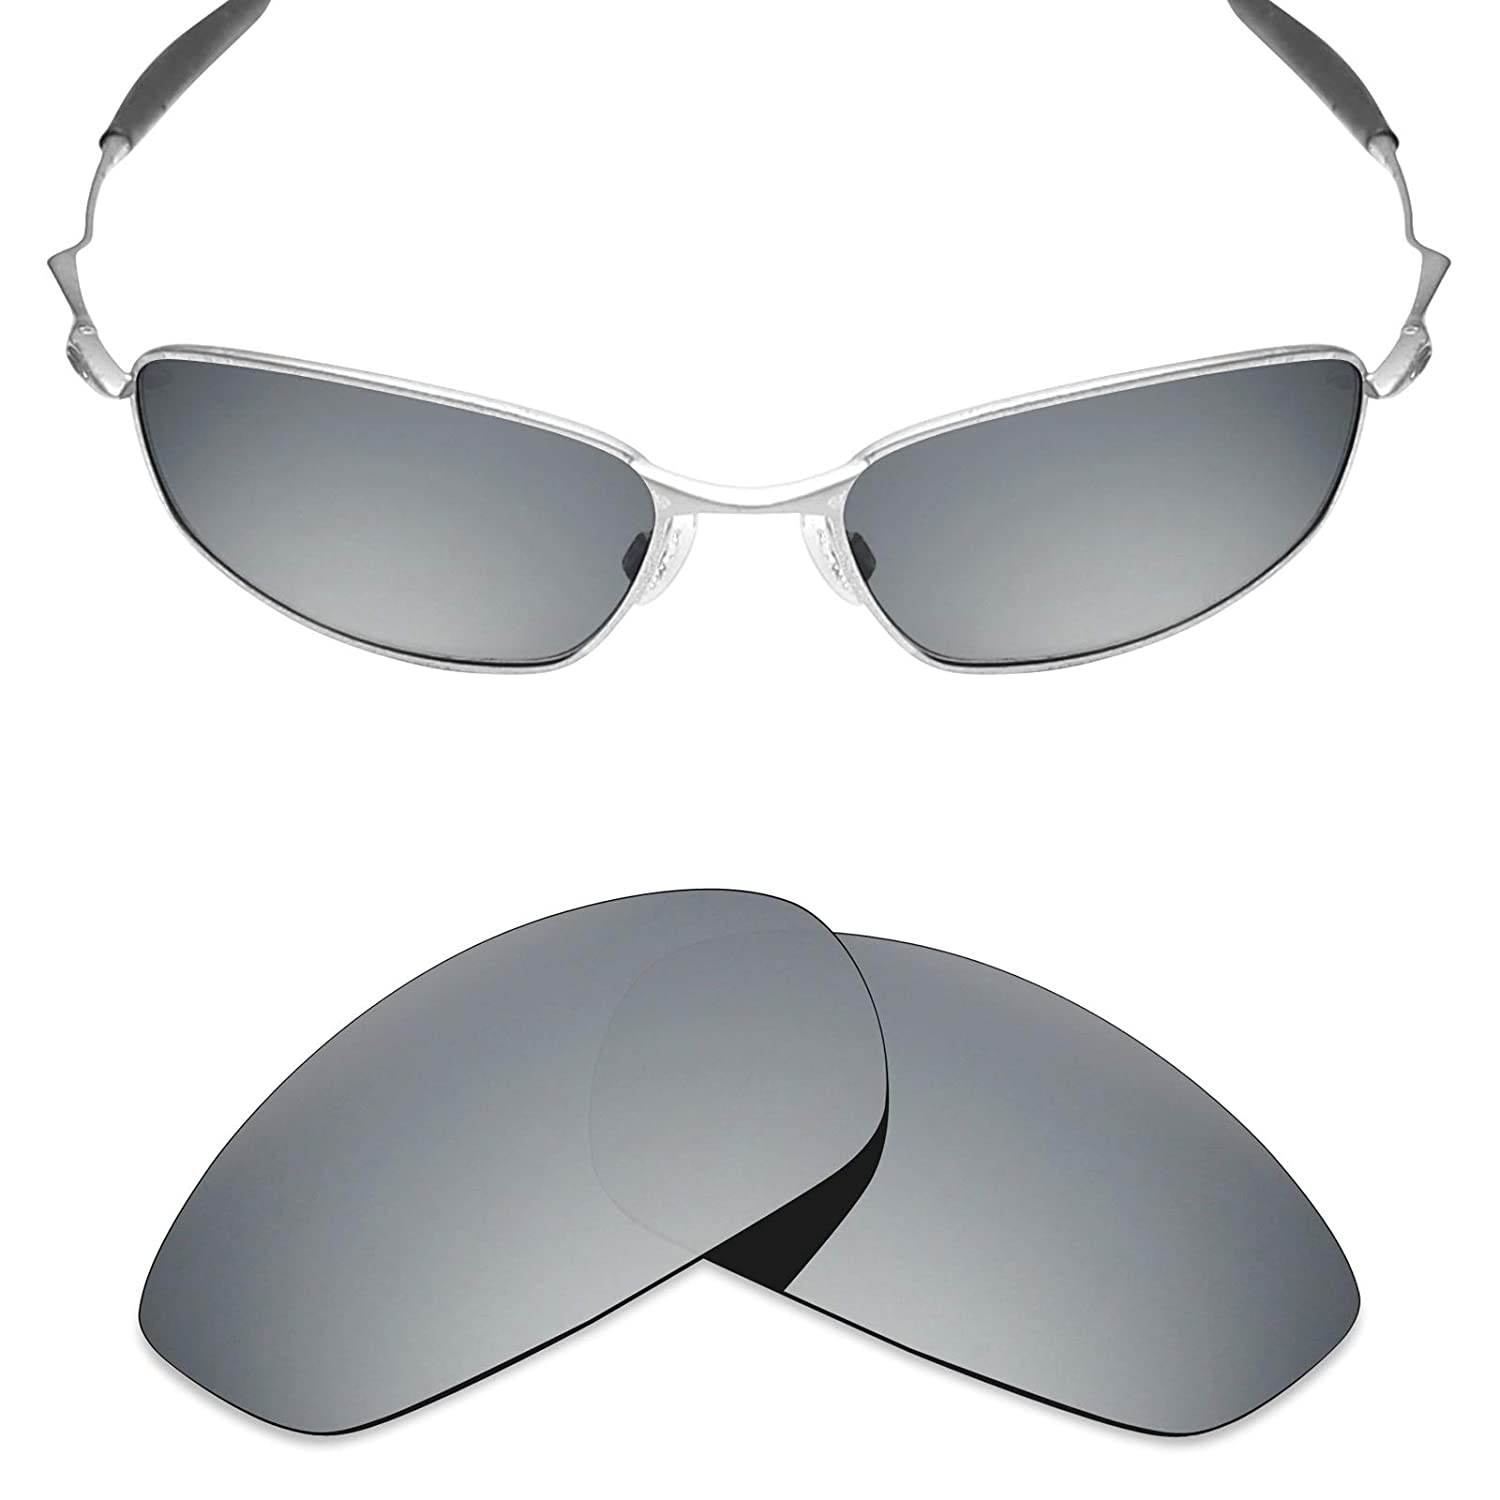 e7e33b3c24 Mryok Replacement Lenses for Oakley Whisker Sunglasses - Rich Options  OY134W2G12D